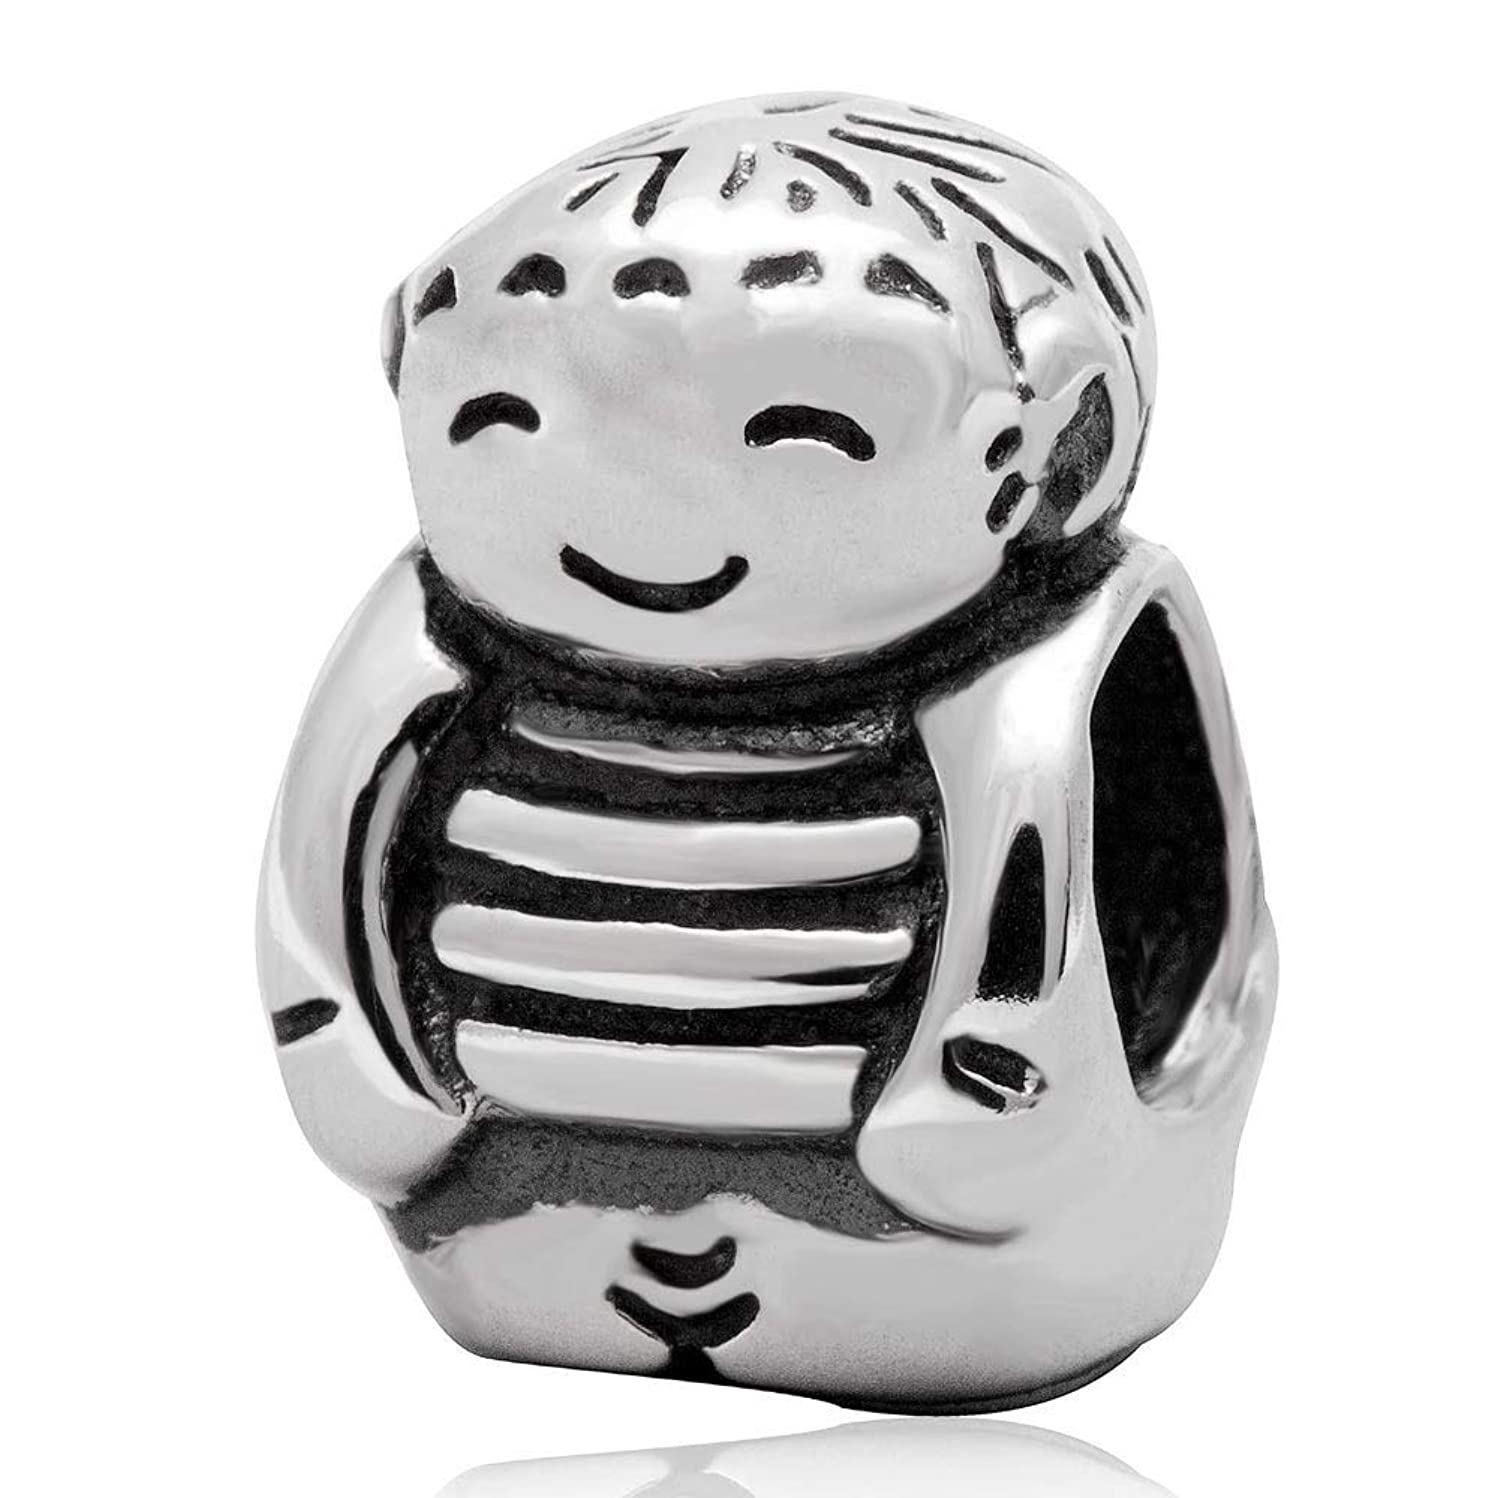 Smile Boy Charm 925 Standard Sterling Silver Child Charm Birthday Charm Baby Charm For Charm Bracelet Necklace